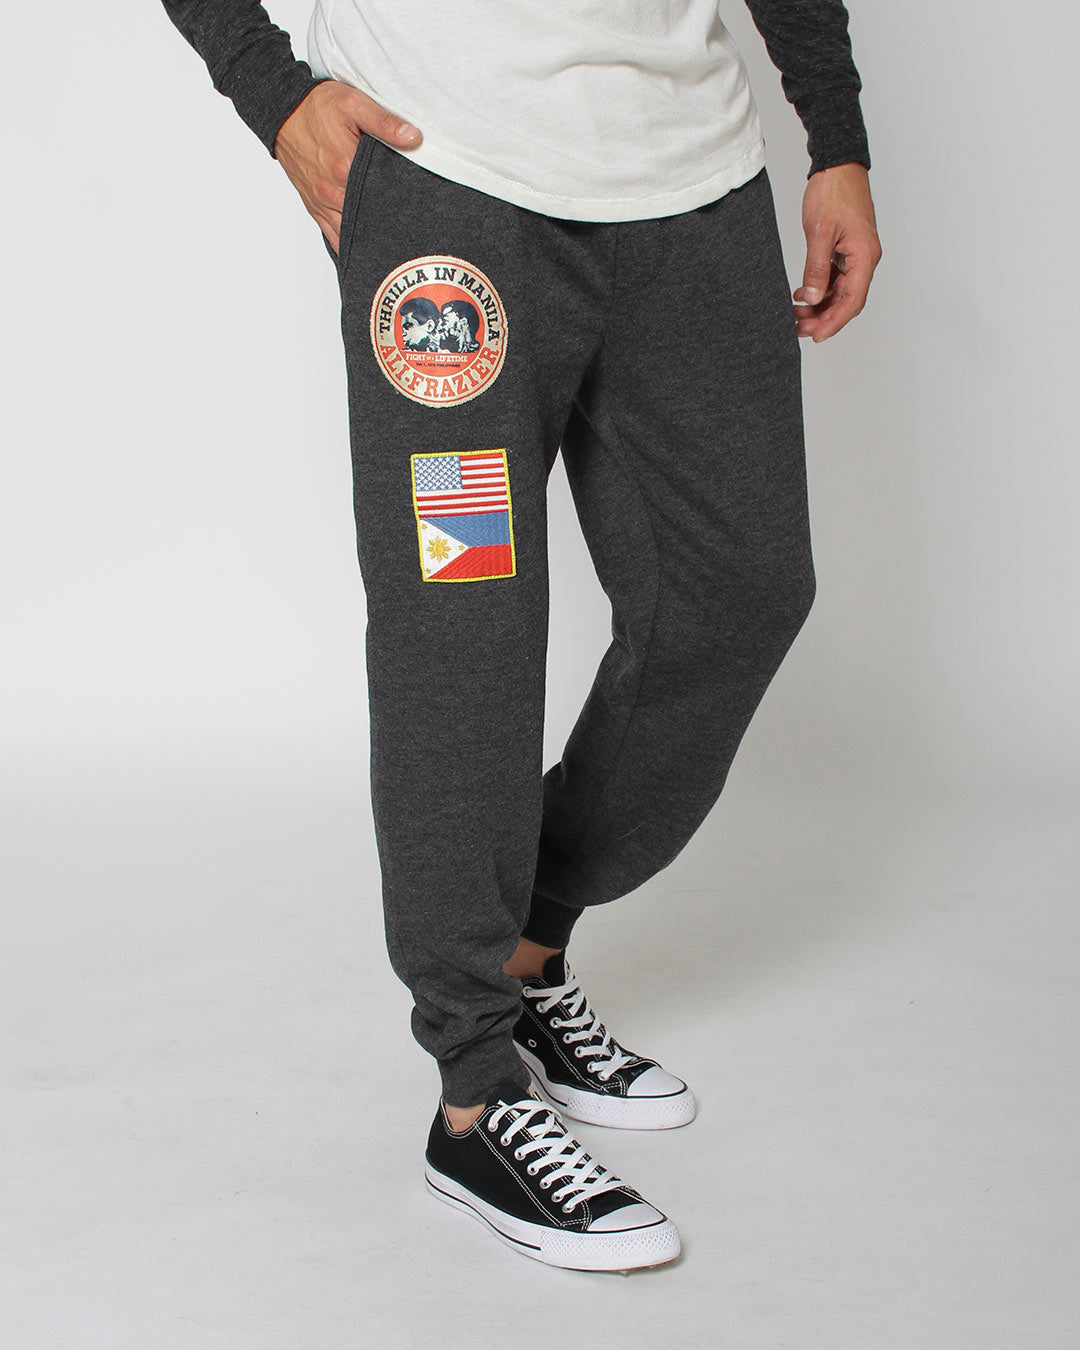 Thrilla in Manila Sweatpants